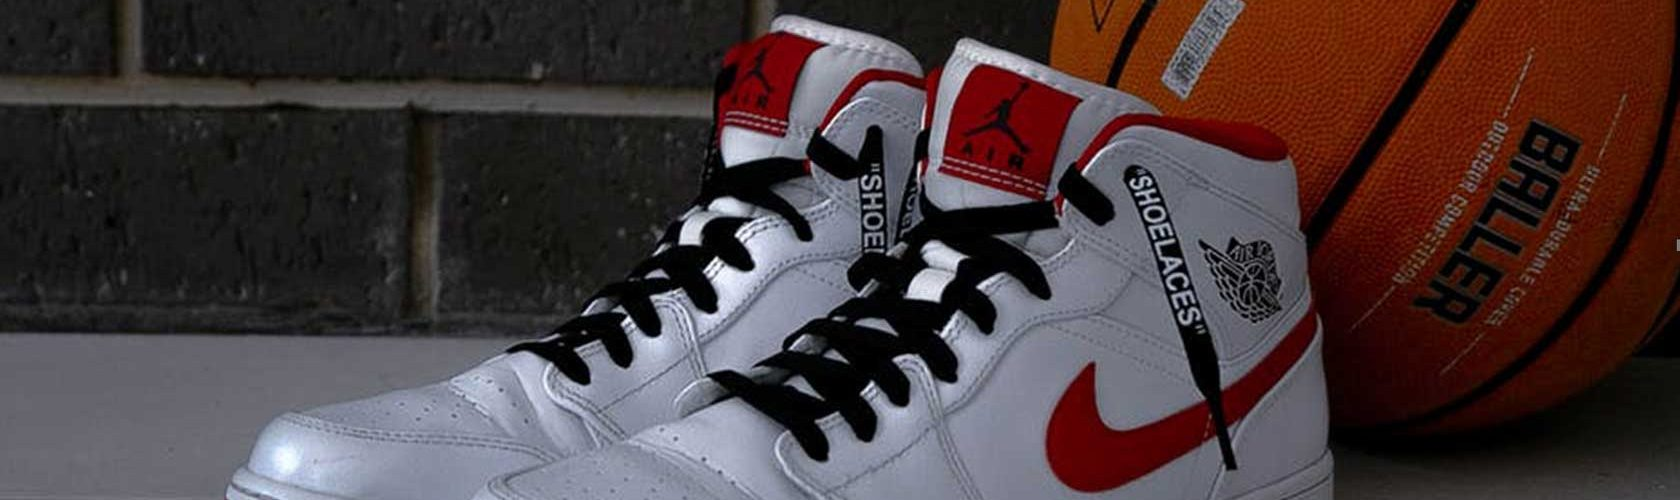 jordans Are Real or Fake